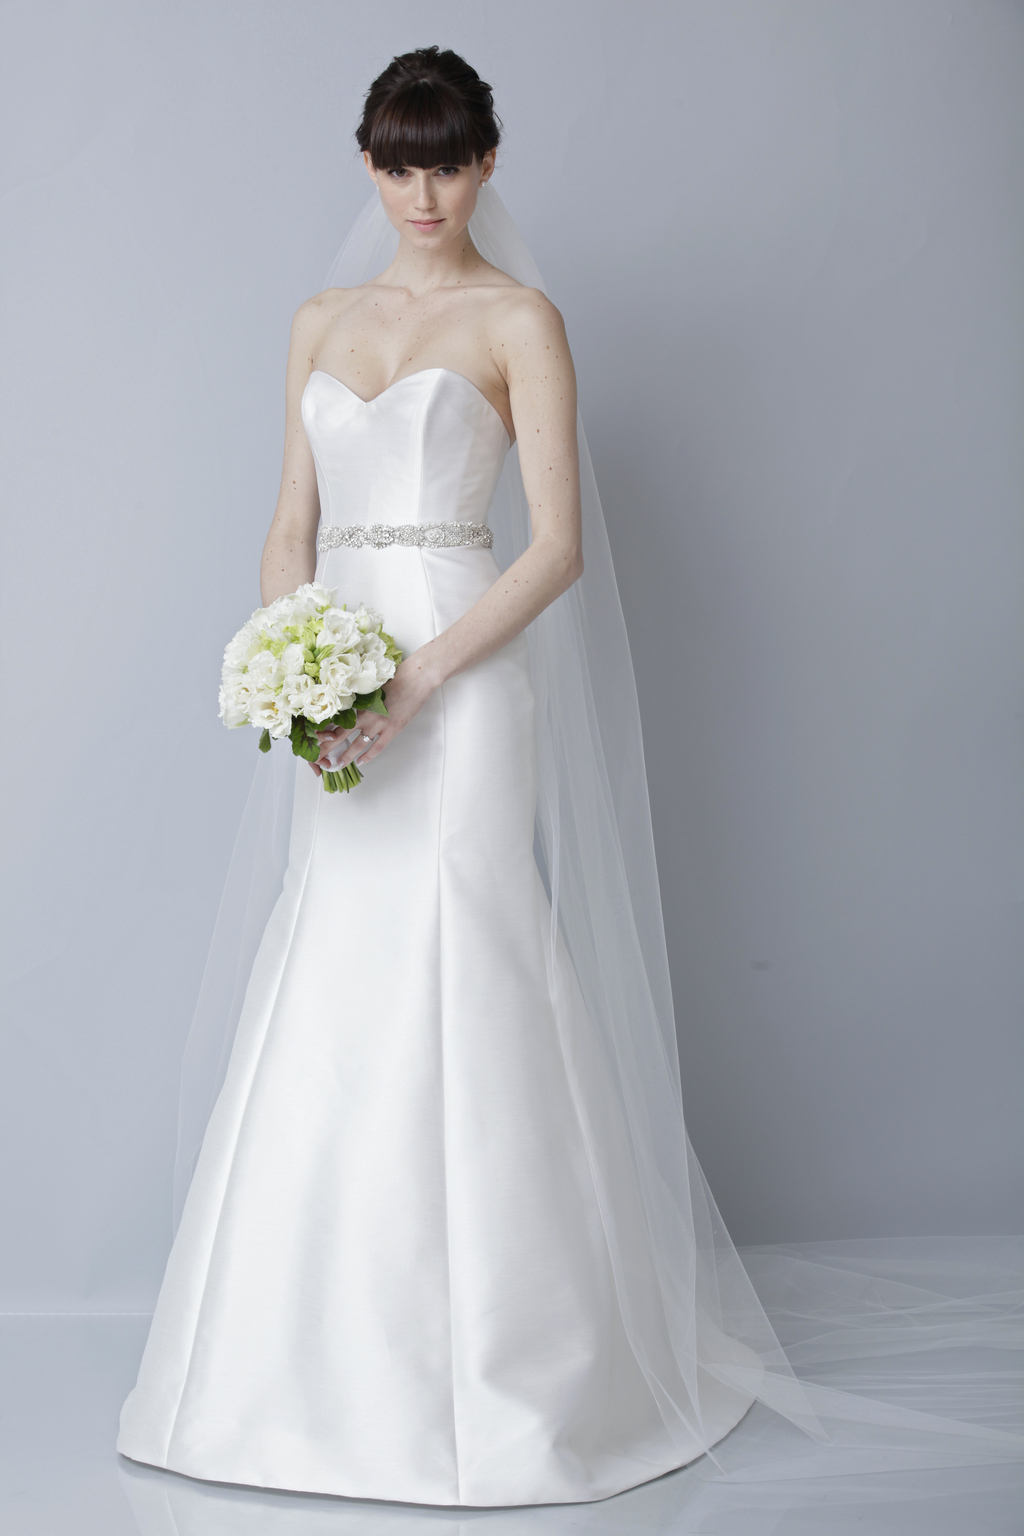 Theia-white-collection-wedding-dress-spring-2013-bridal-gown-890025.full